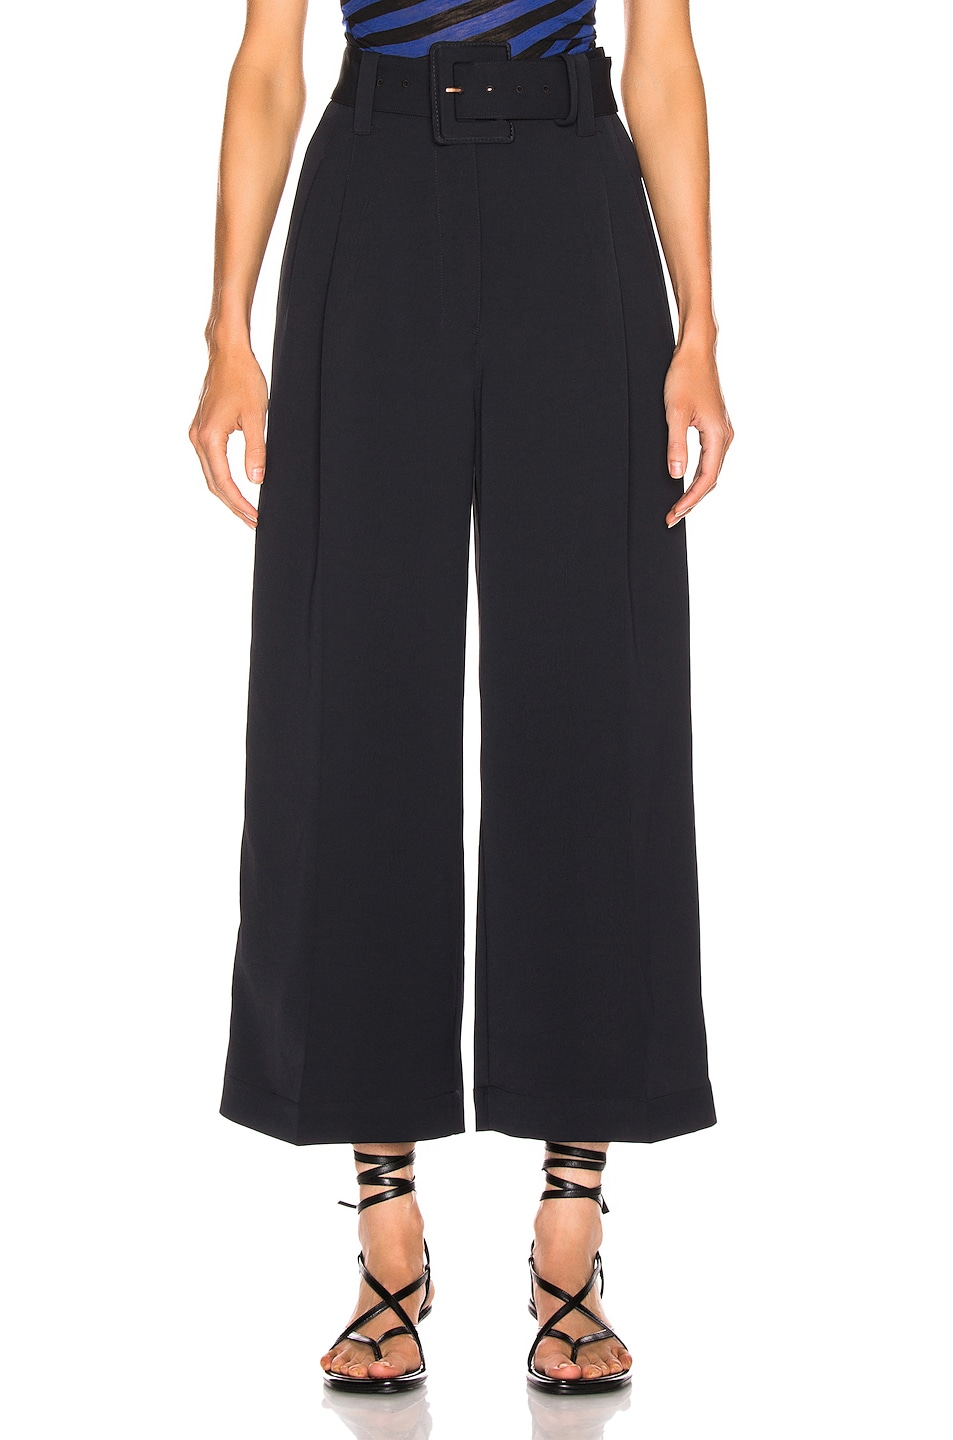 Image 1 of Proenza Schouler Belted Pant in Black